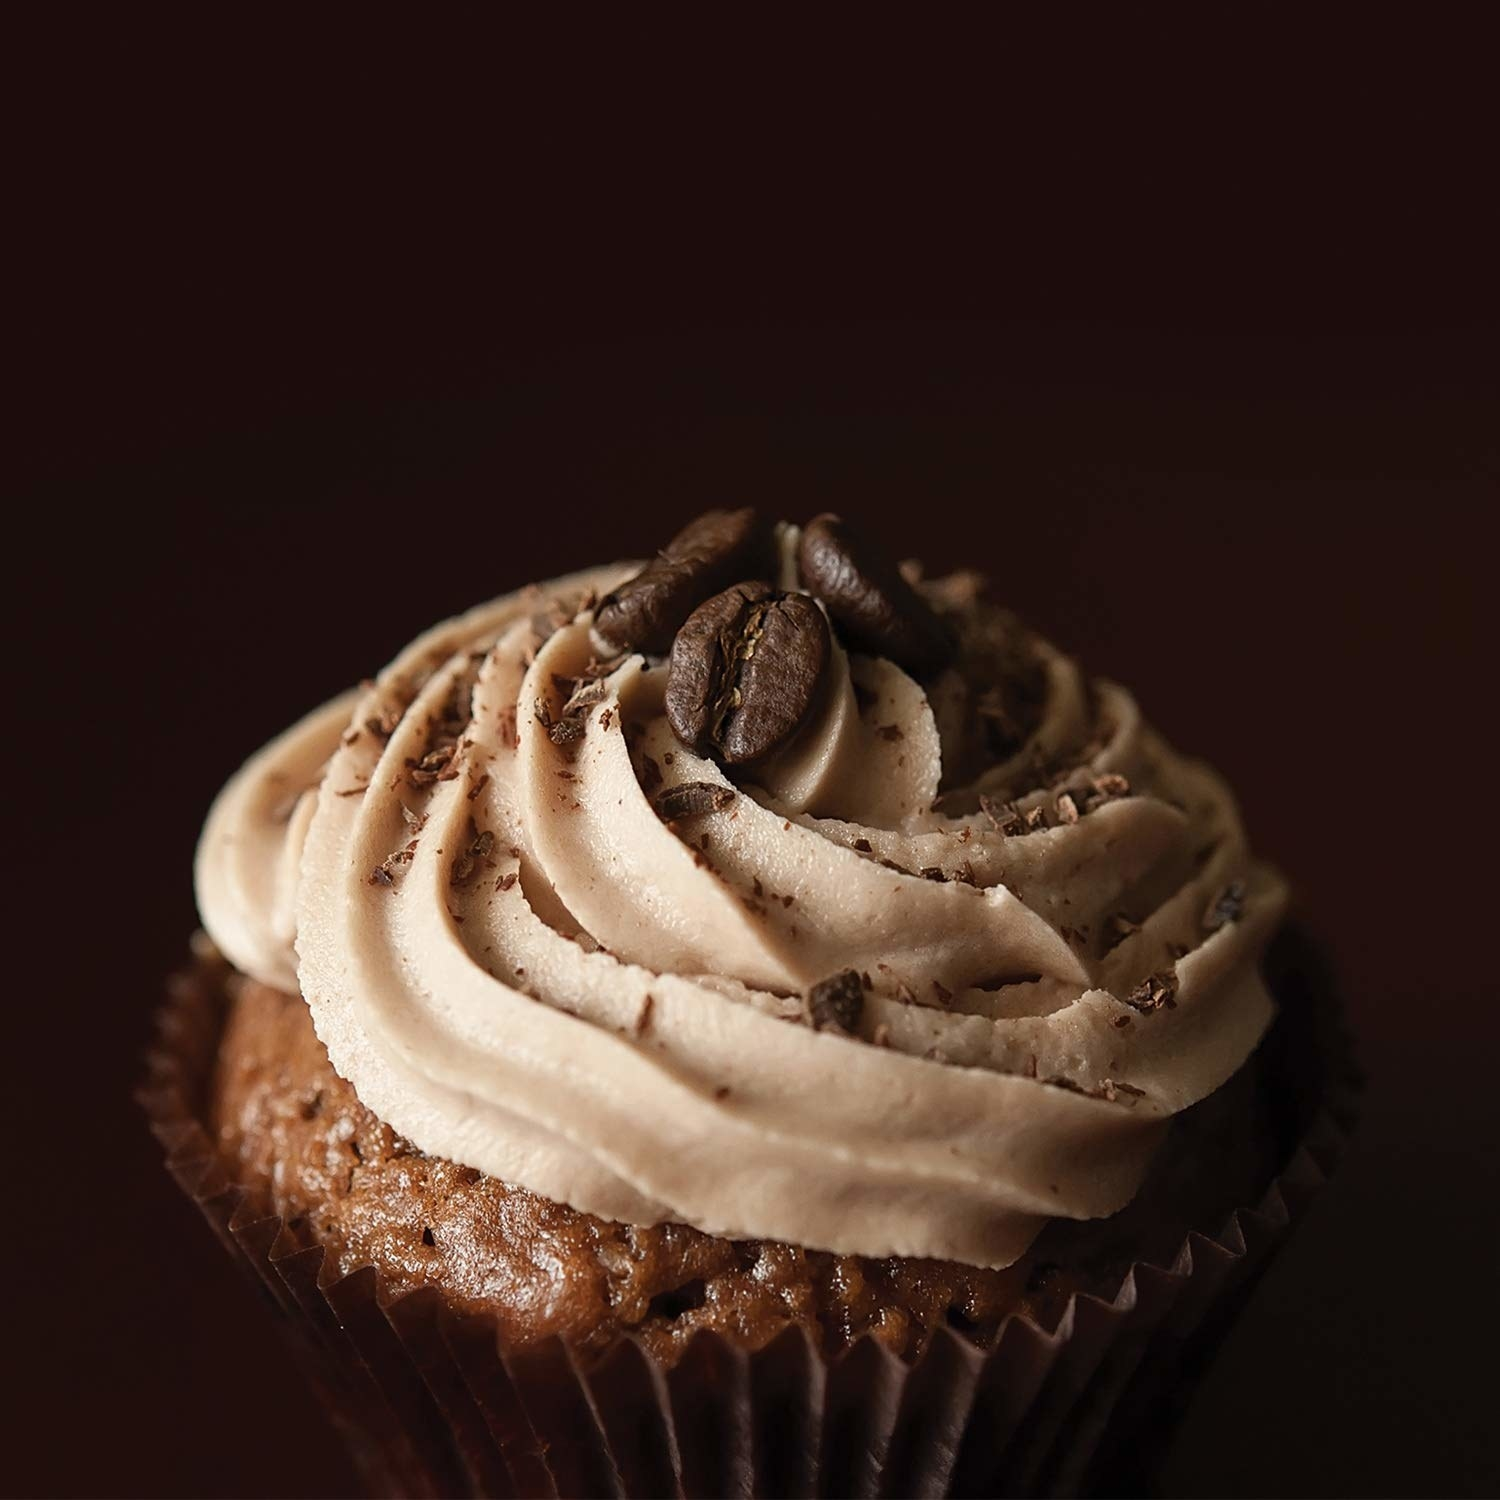 A cupcake with icing on it and two coffee beans on top.